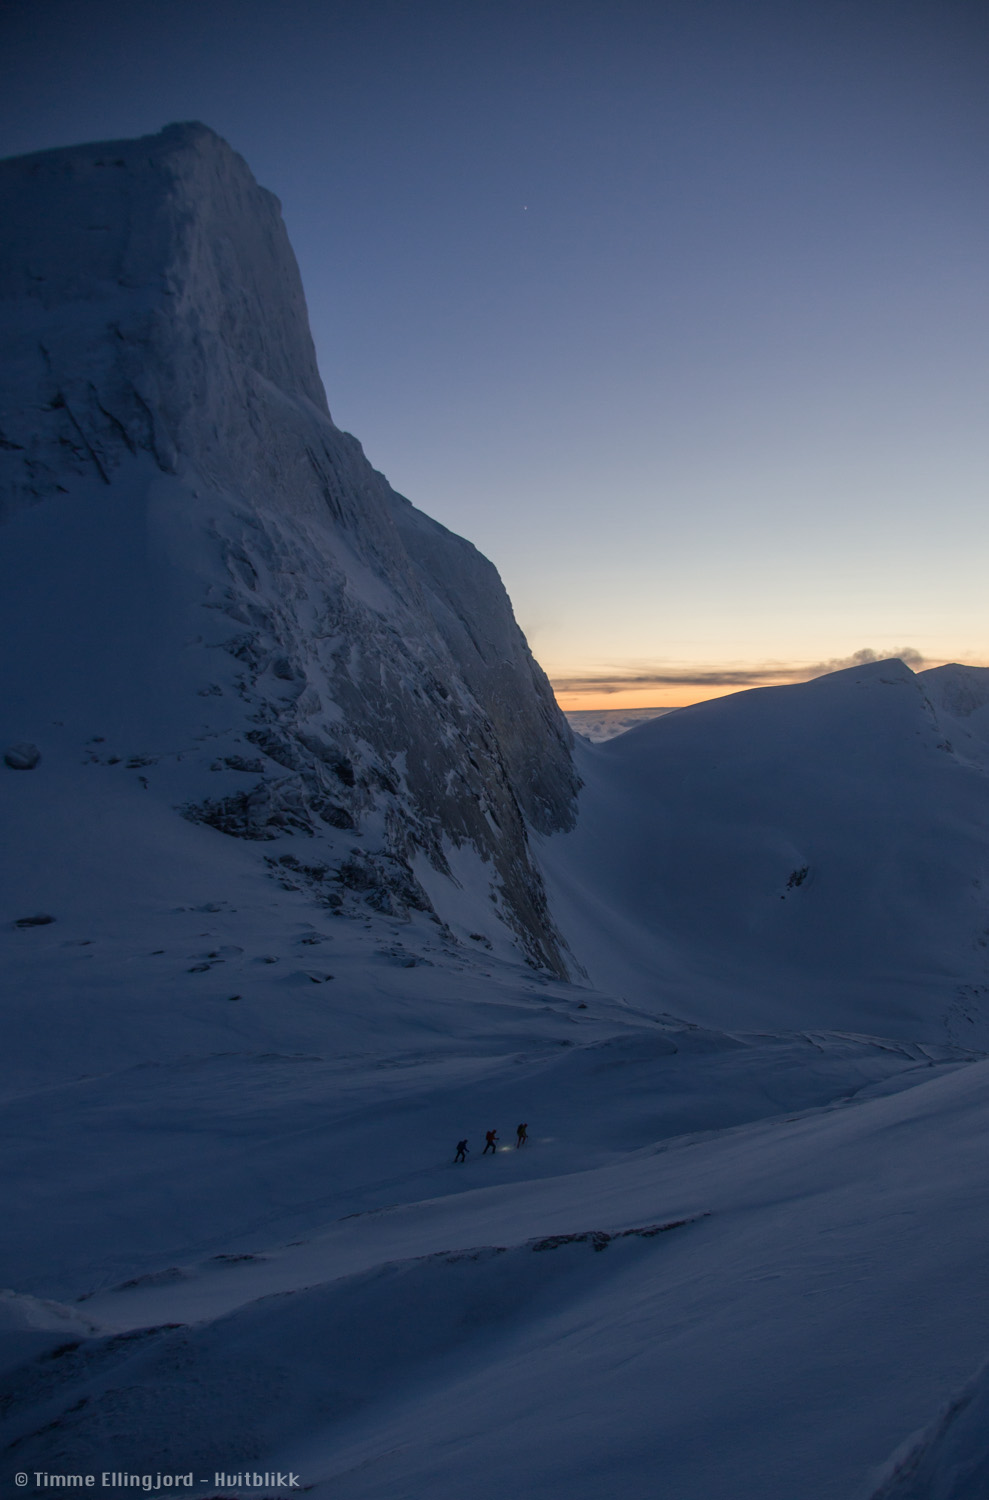 being out in the dark could be pretty fucking amazing sometimes. Wish I had a better camera this time, mine being at repairs. I did like this one though, capturing our 3 friends on their way down. Presttind in the background.